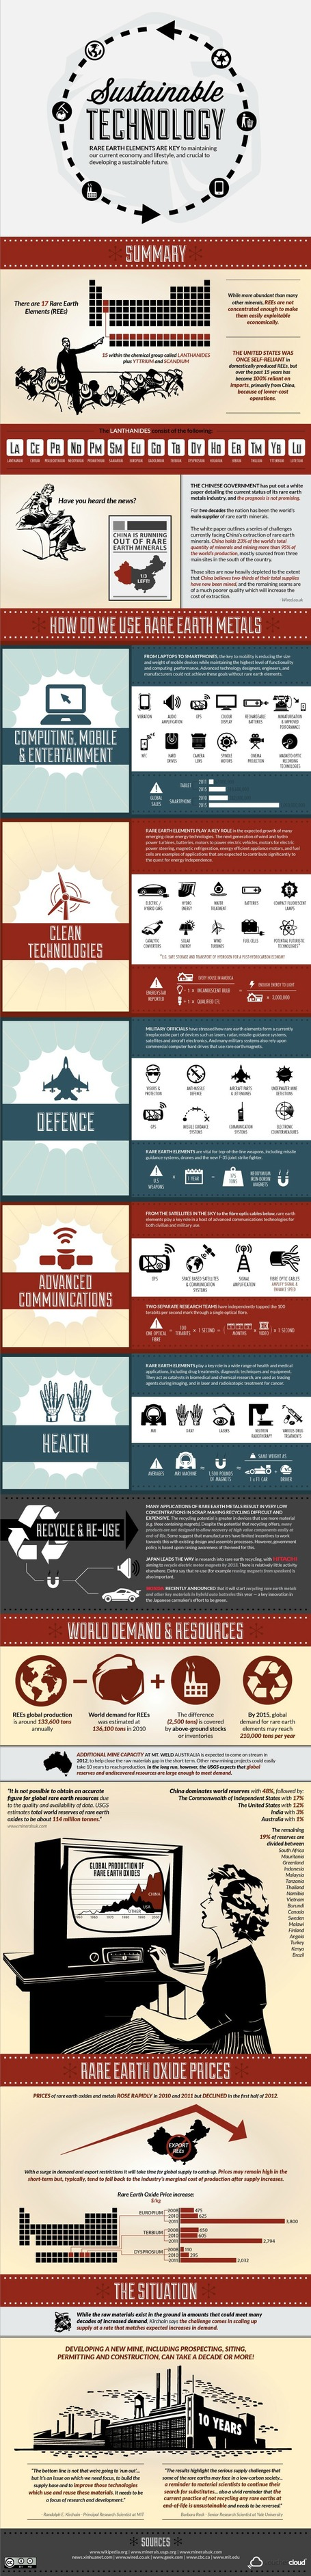 Sustainable Technology: Our phones are depleting natural resources [INFOGRAPHIC] | Sustain Our Earth | Scoop.it